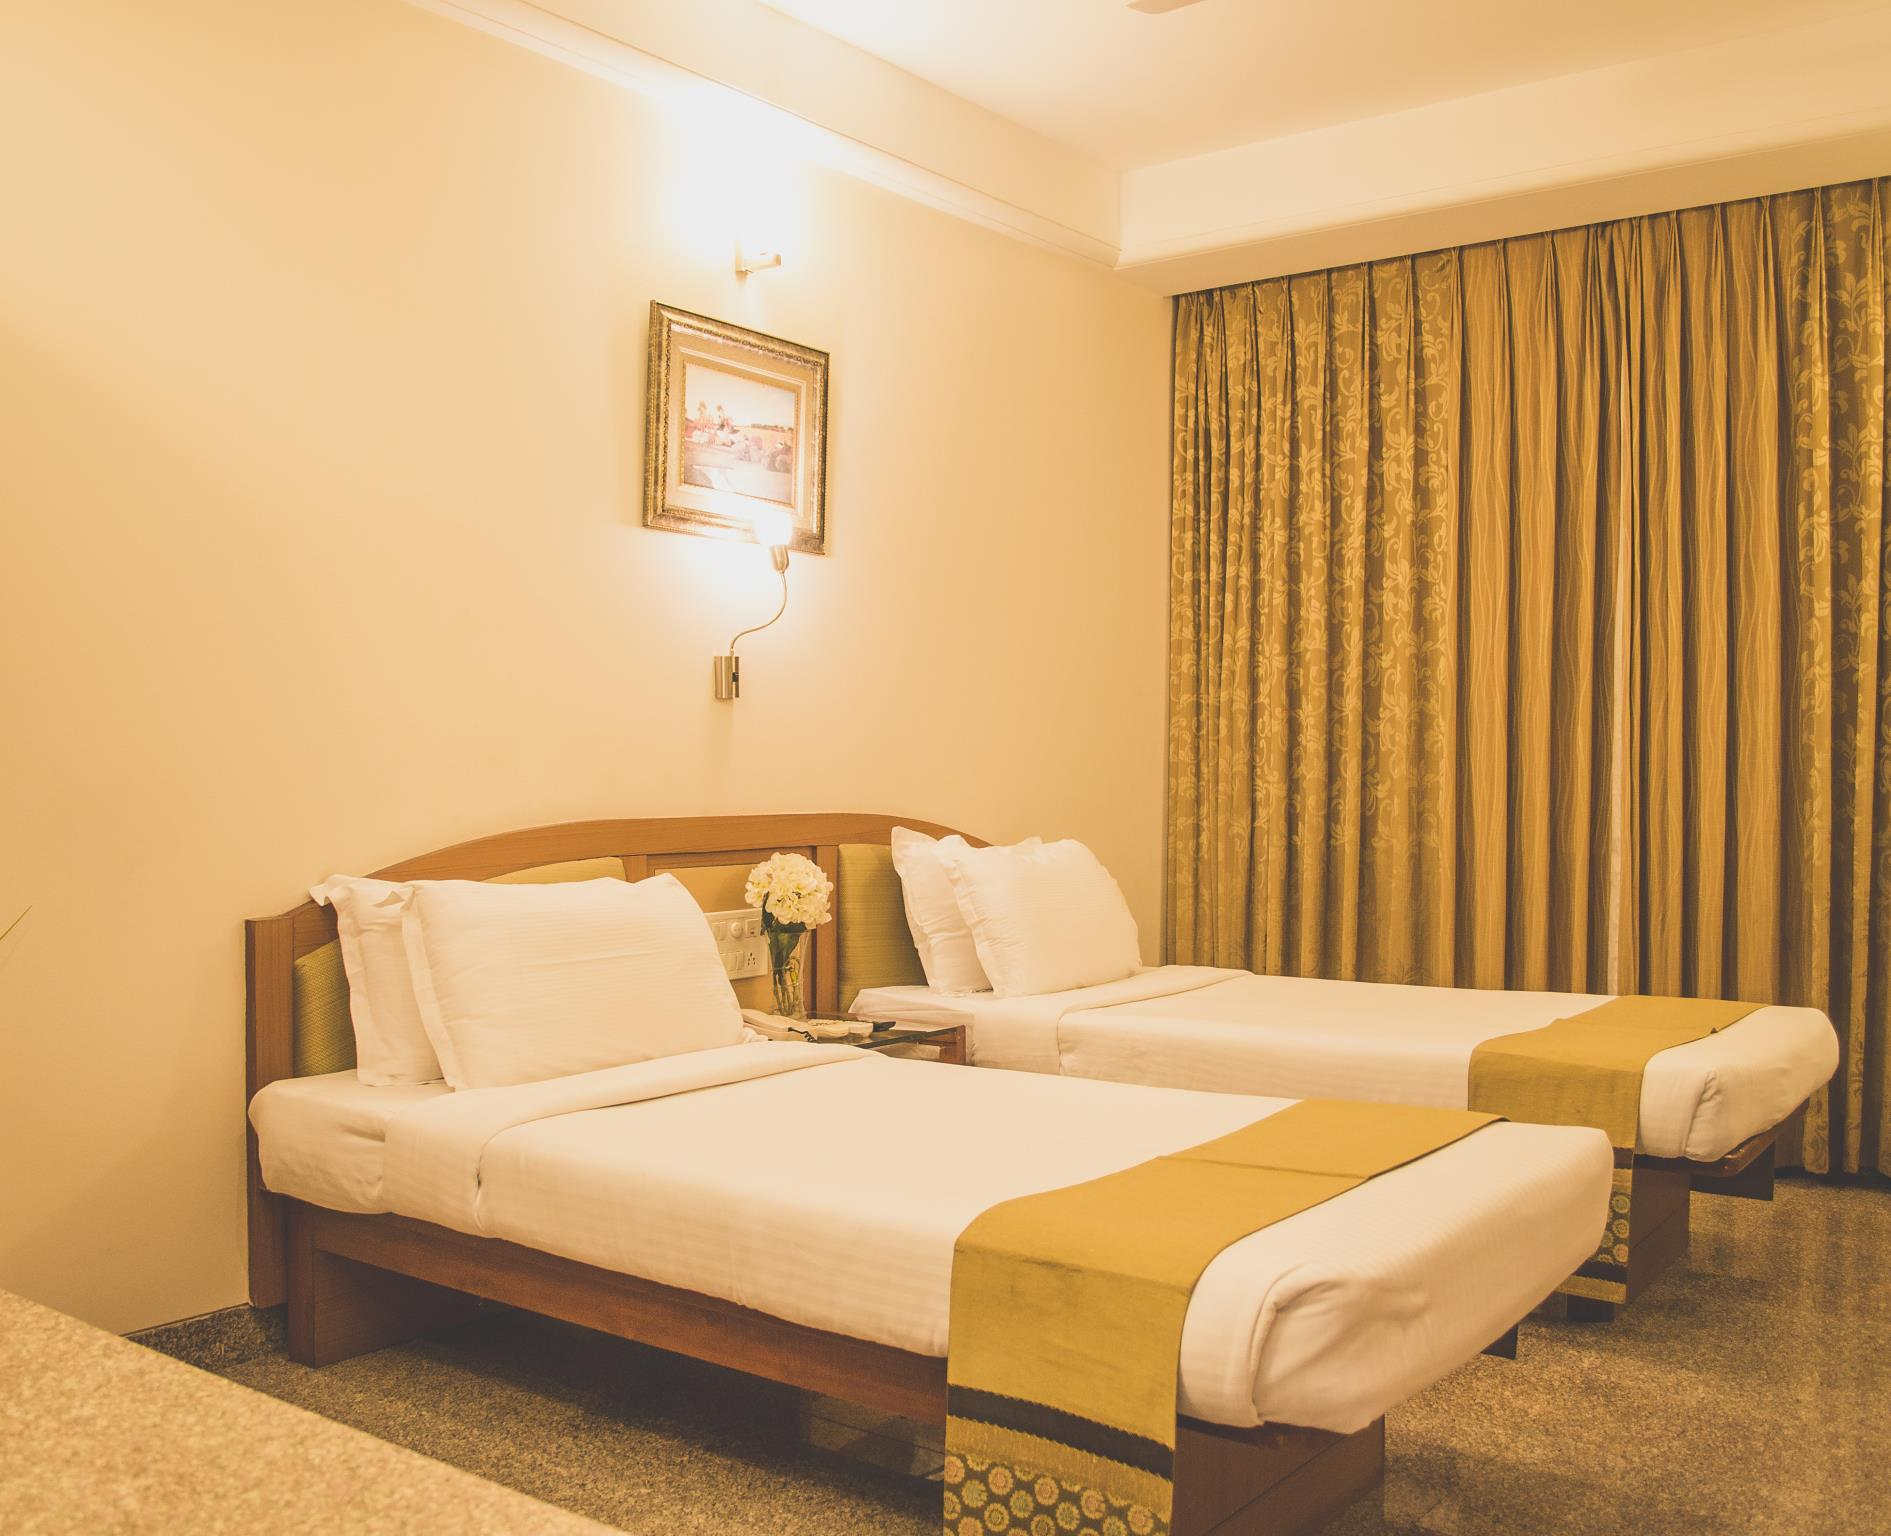 The Hotel Ambience 2